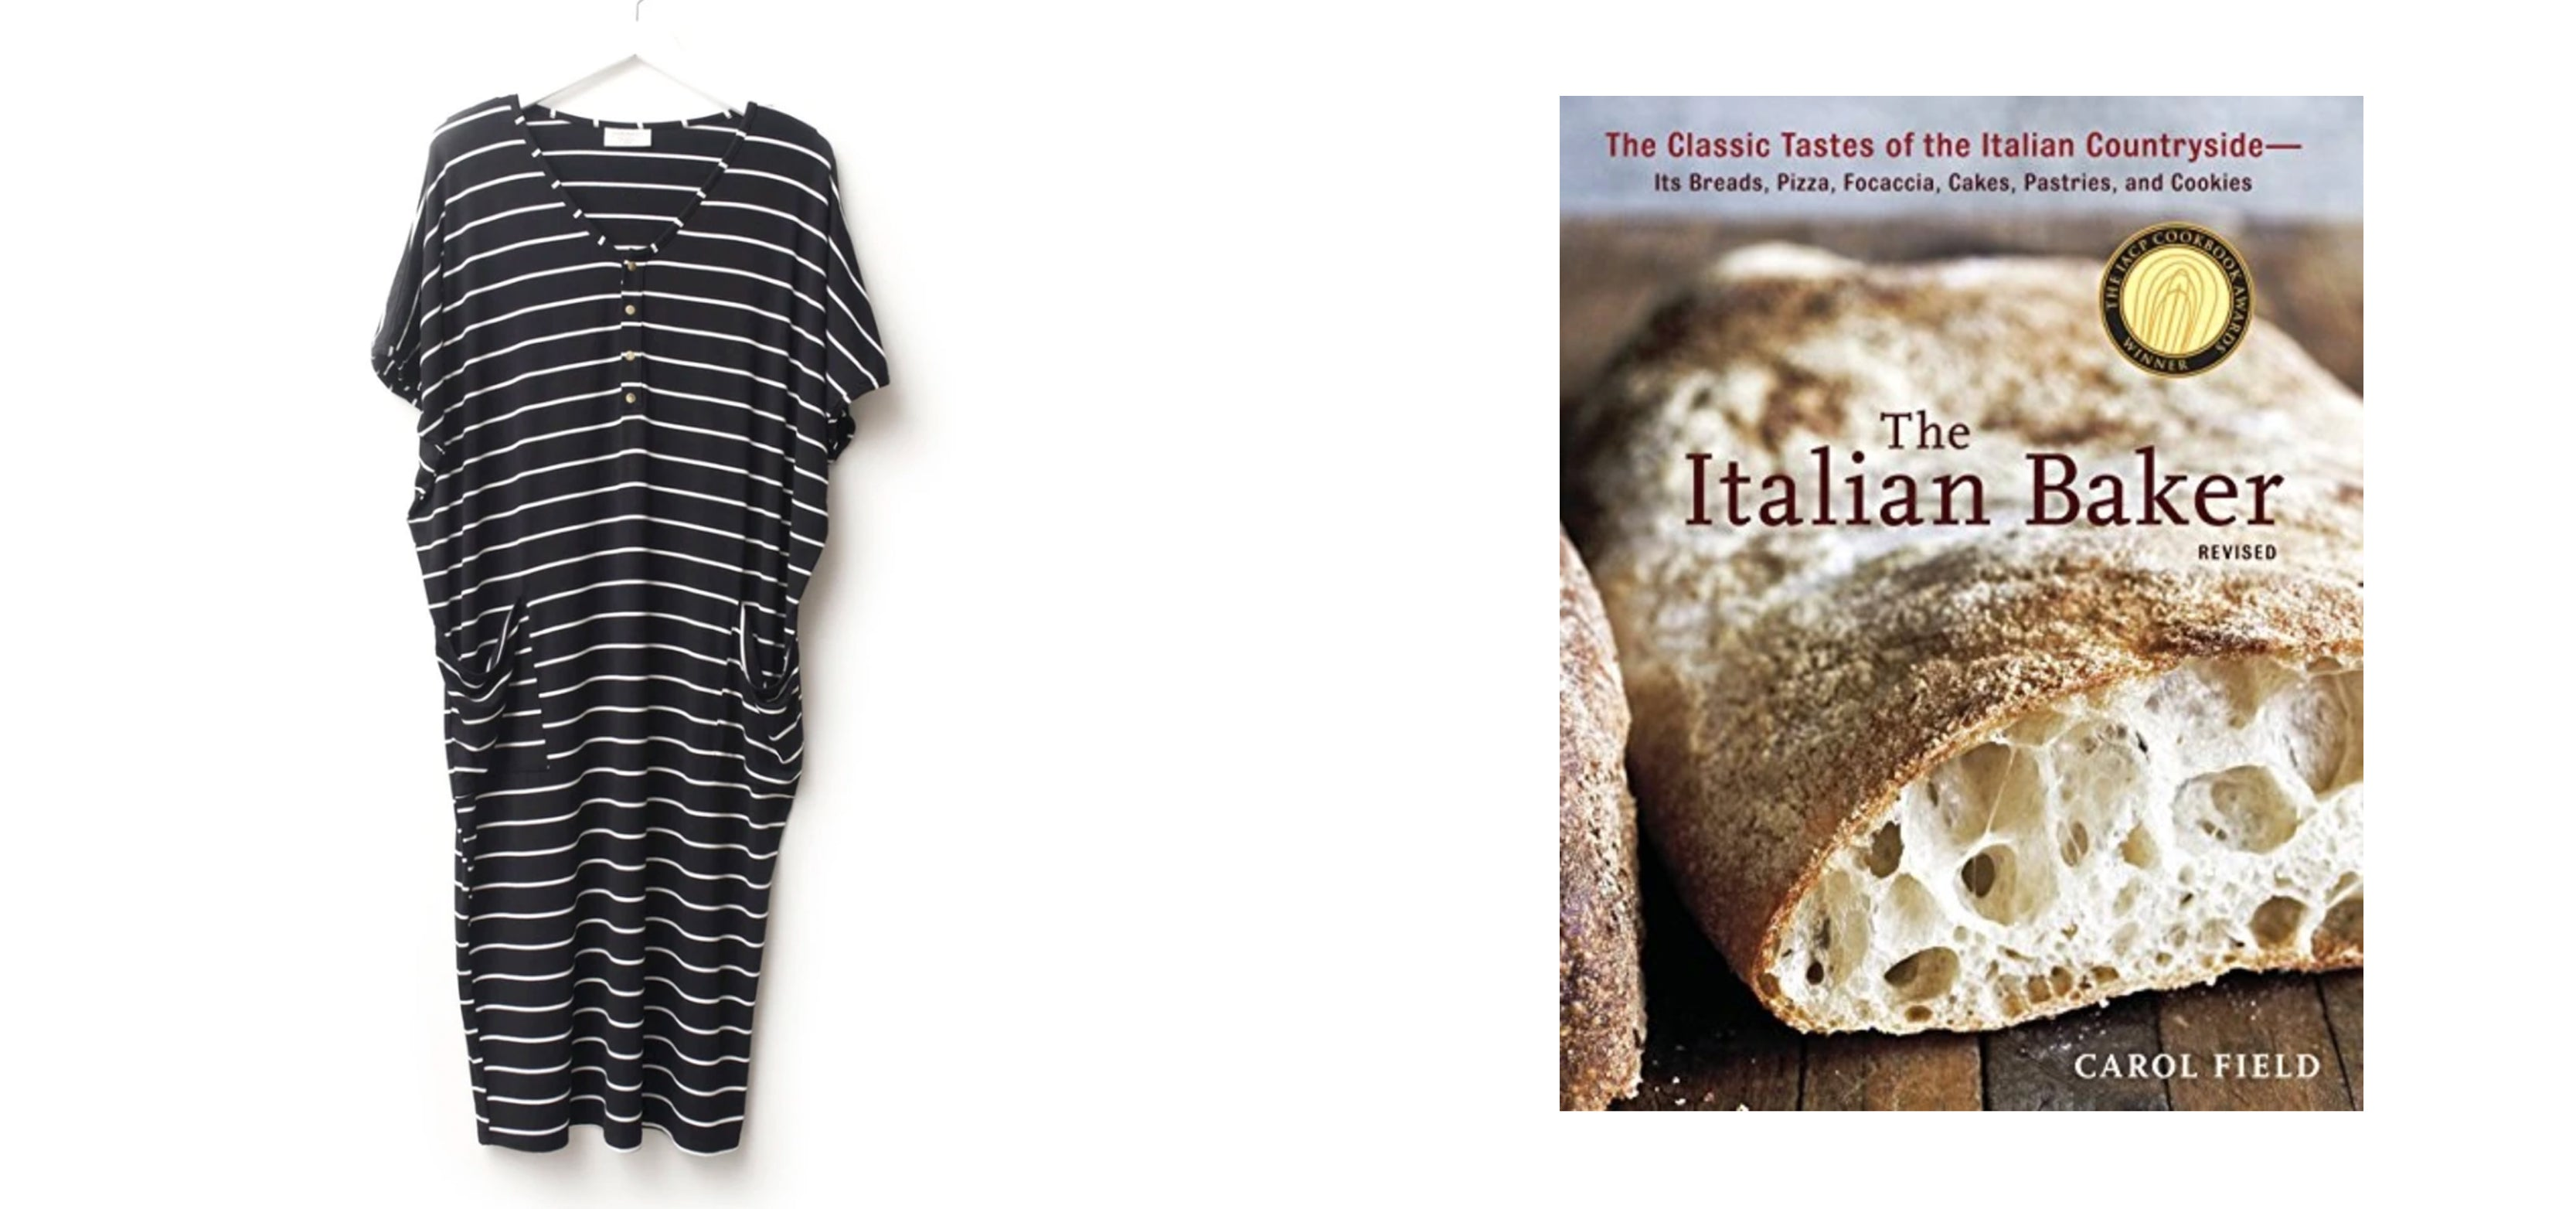 Dwell and Slumber Nightgown, The Italian Baker, Carol Field.